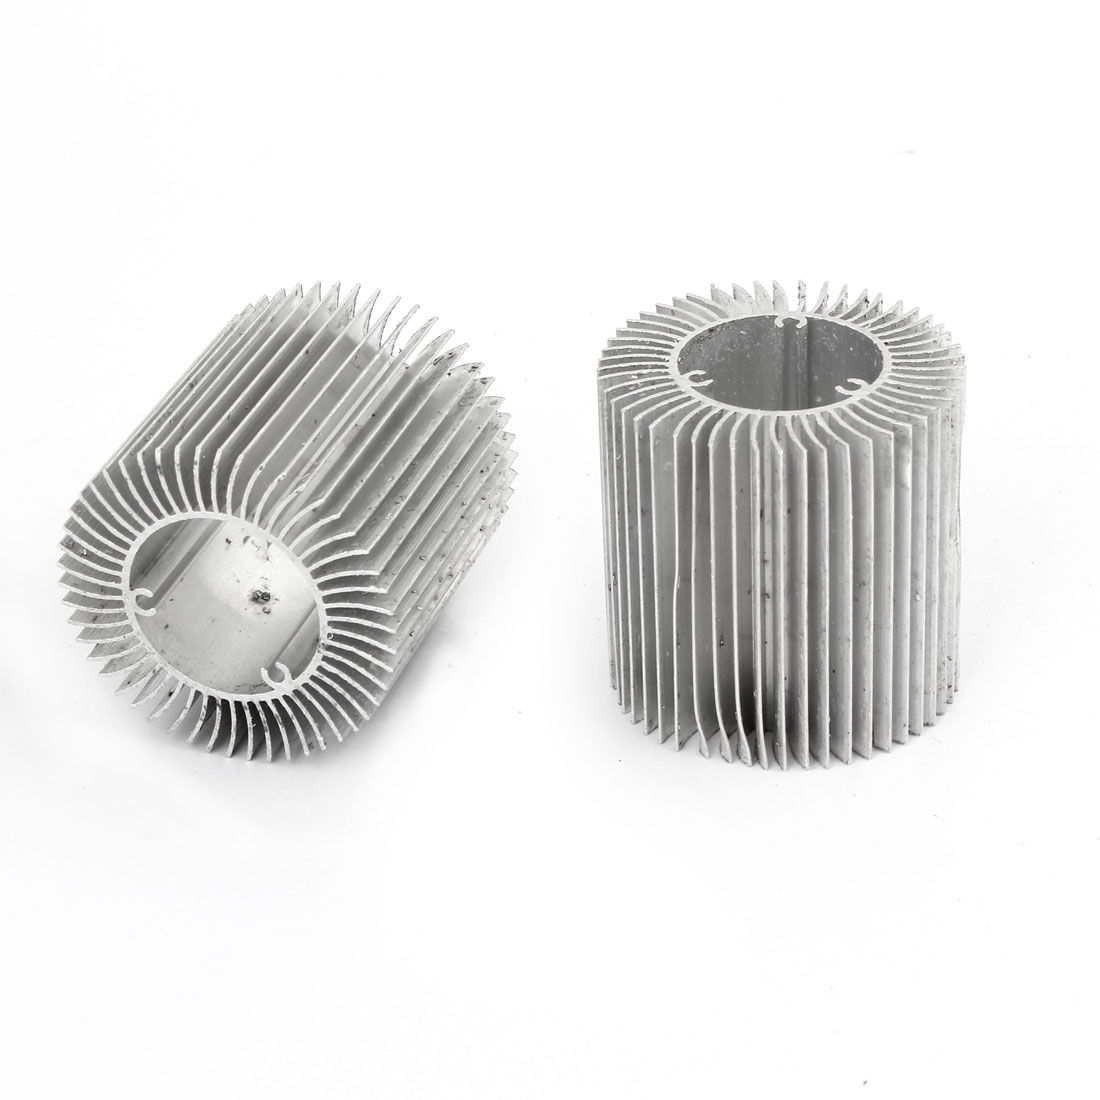 2 x Aluminium Heatsink Cooling Fin Cooler Silver Tone 50x28.5x50mm for Led Lamp